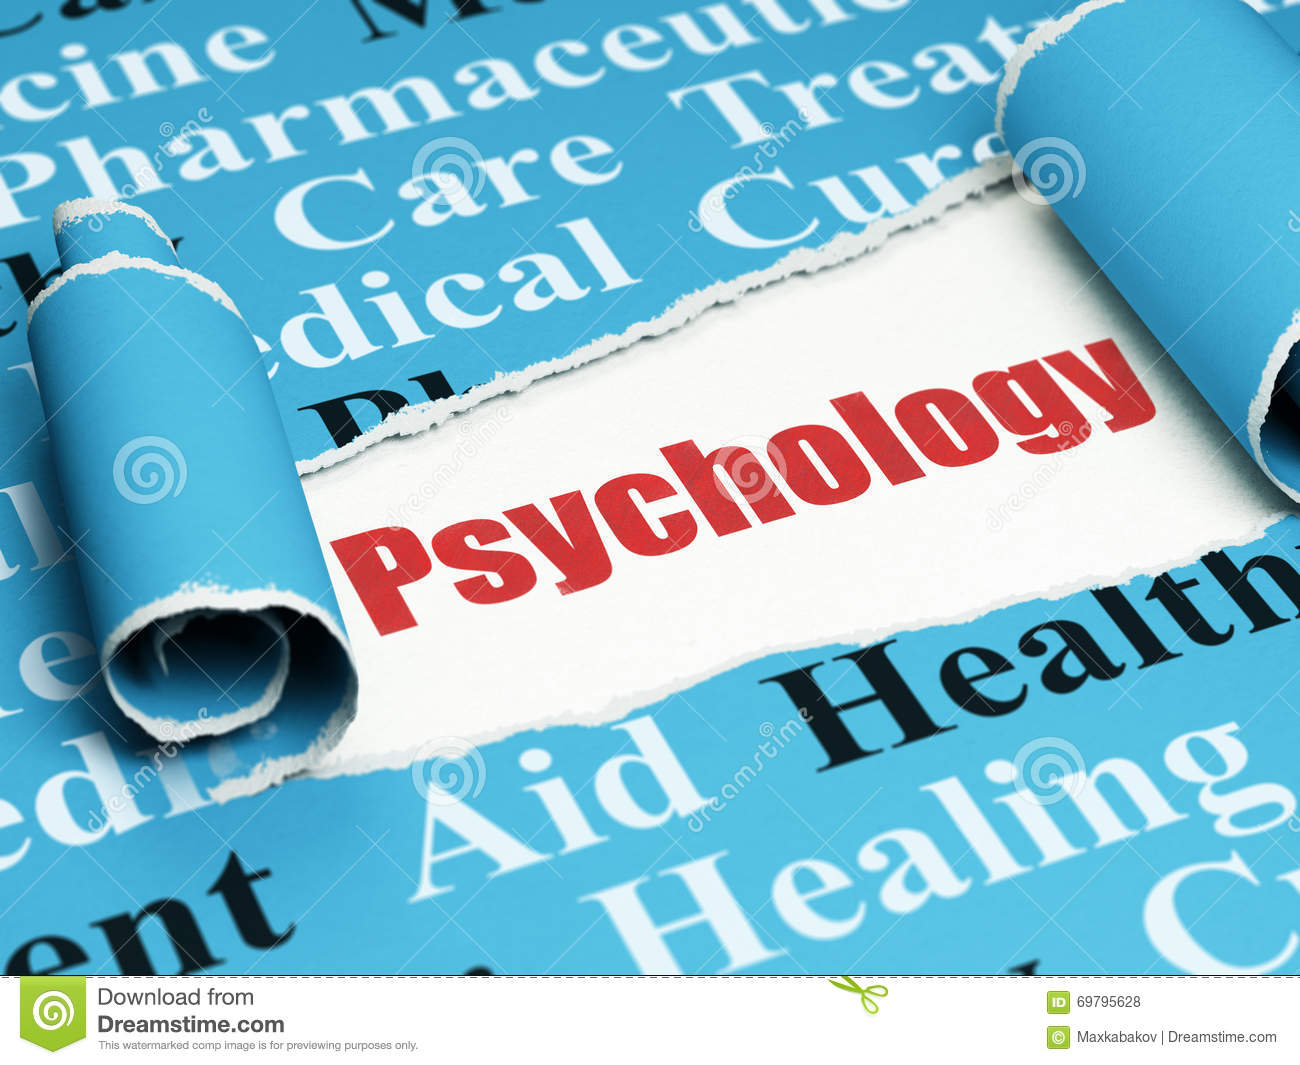 010 Research Paper Psychology On Dreams Health Concept Red Text Under Piece Torn Curled Blue Tag Cloud Rendering Singular Topics Full